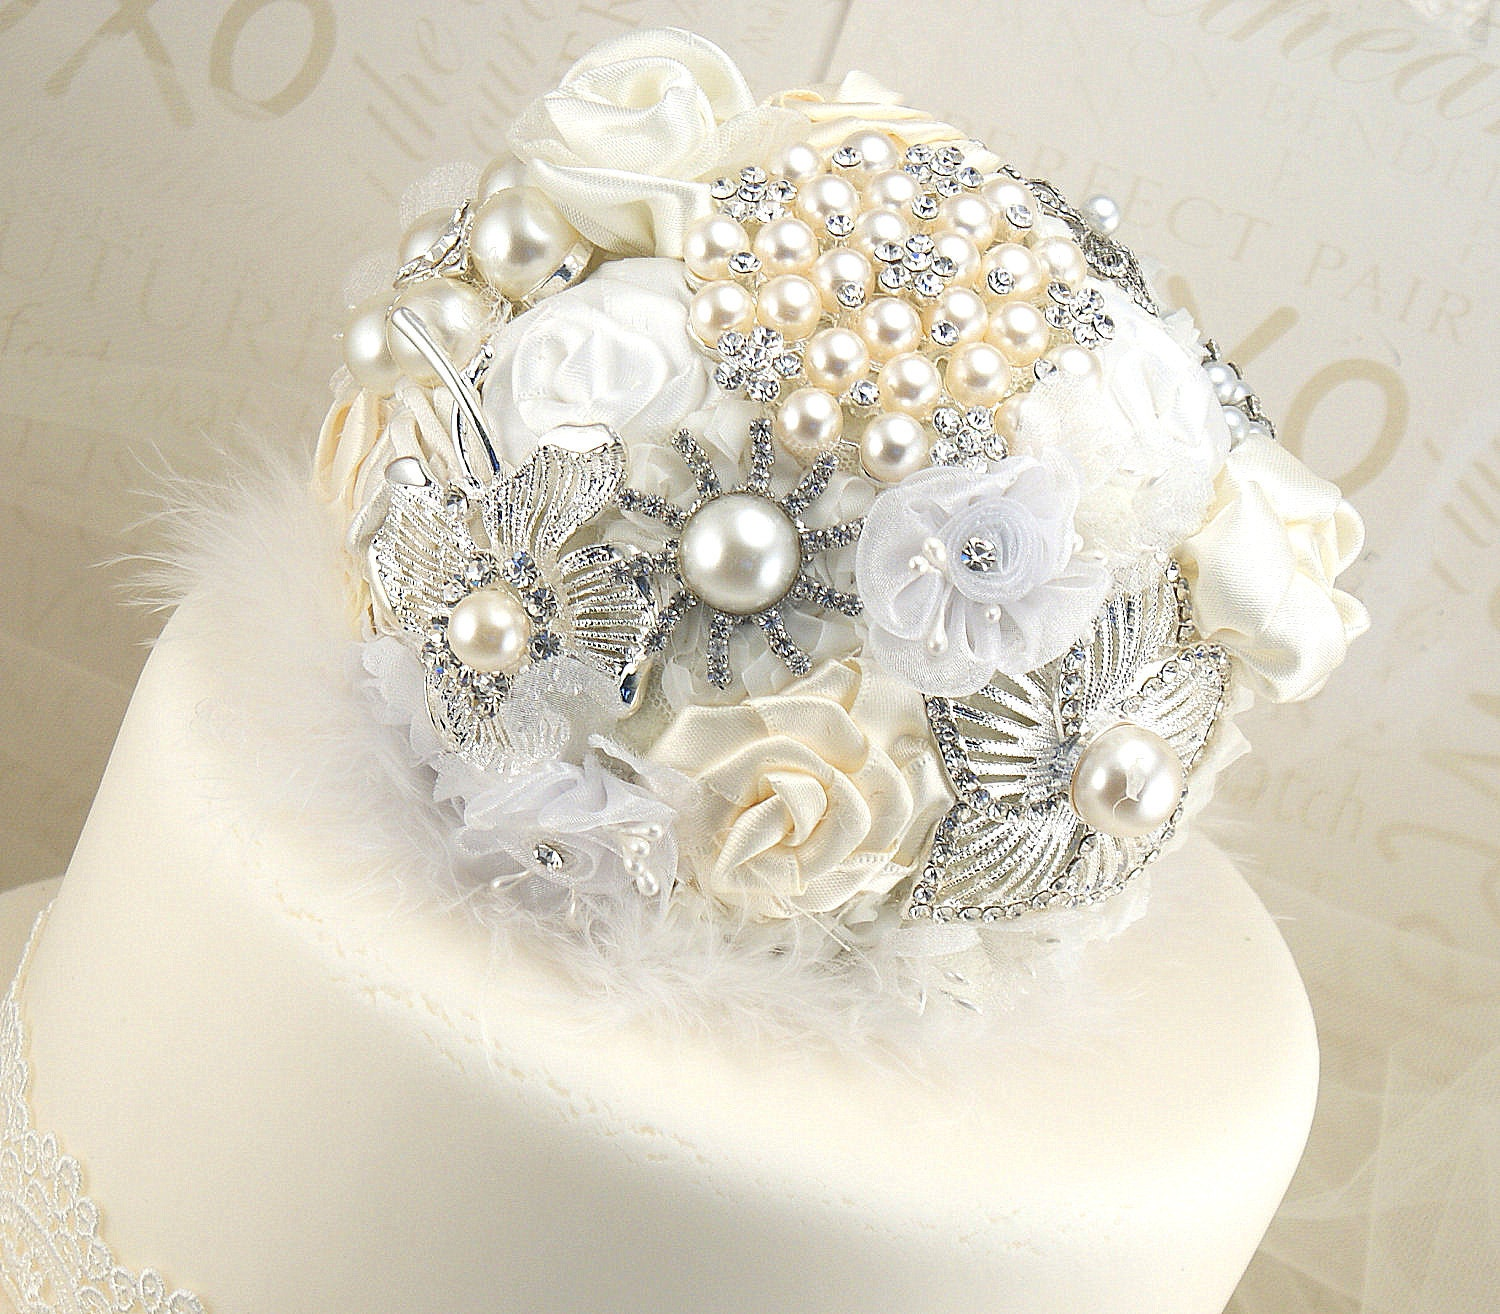 Brooch Cake Topper- Wedding Jeweled Topper in White, Cream and Ivory with Brooches and Handmade Flowers